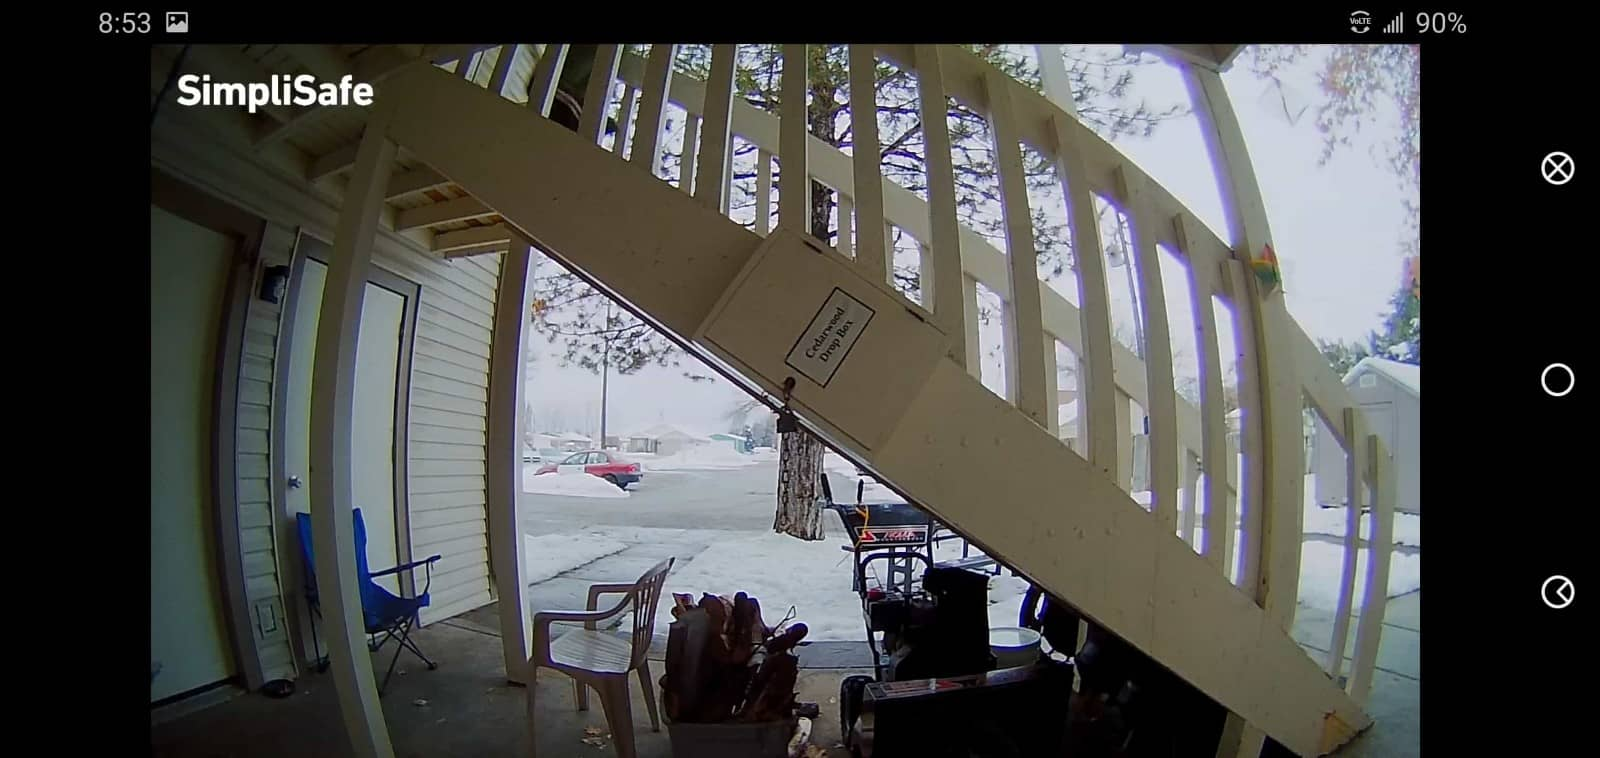 SimpliSafeReview Porch Footage Day 01